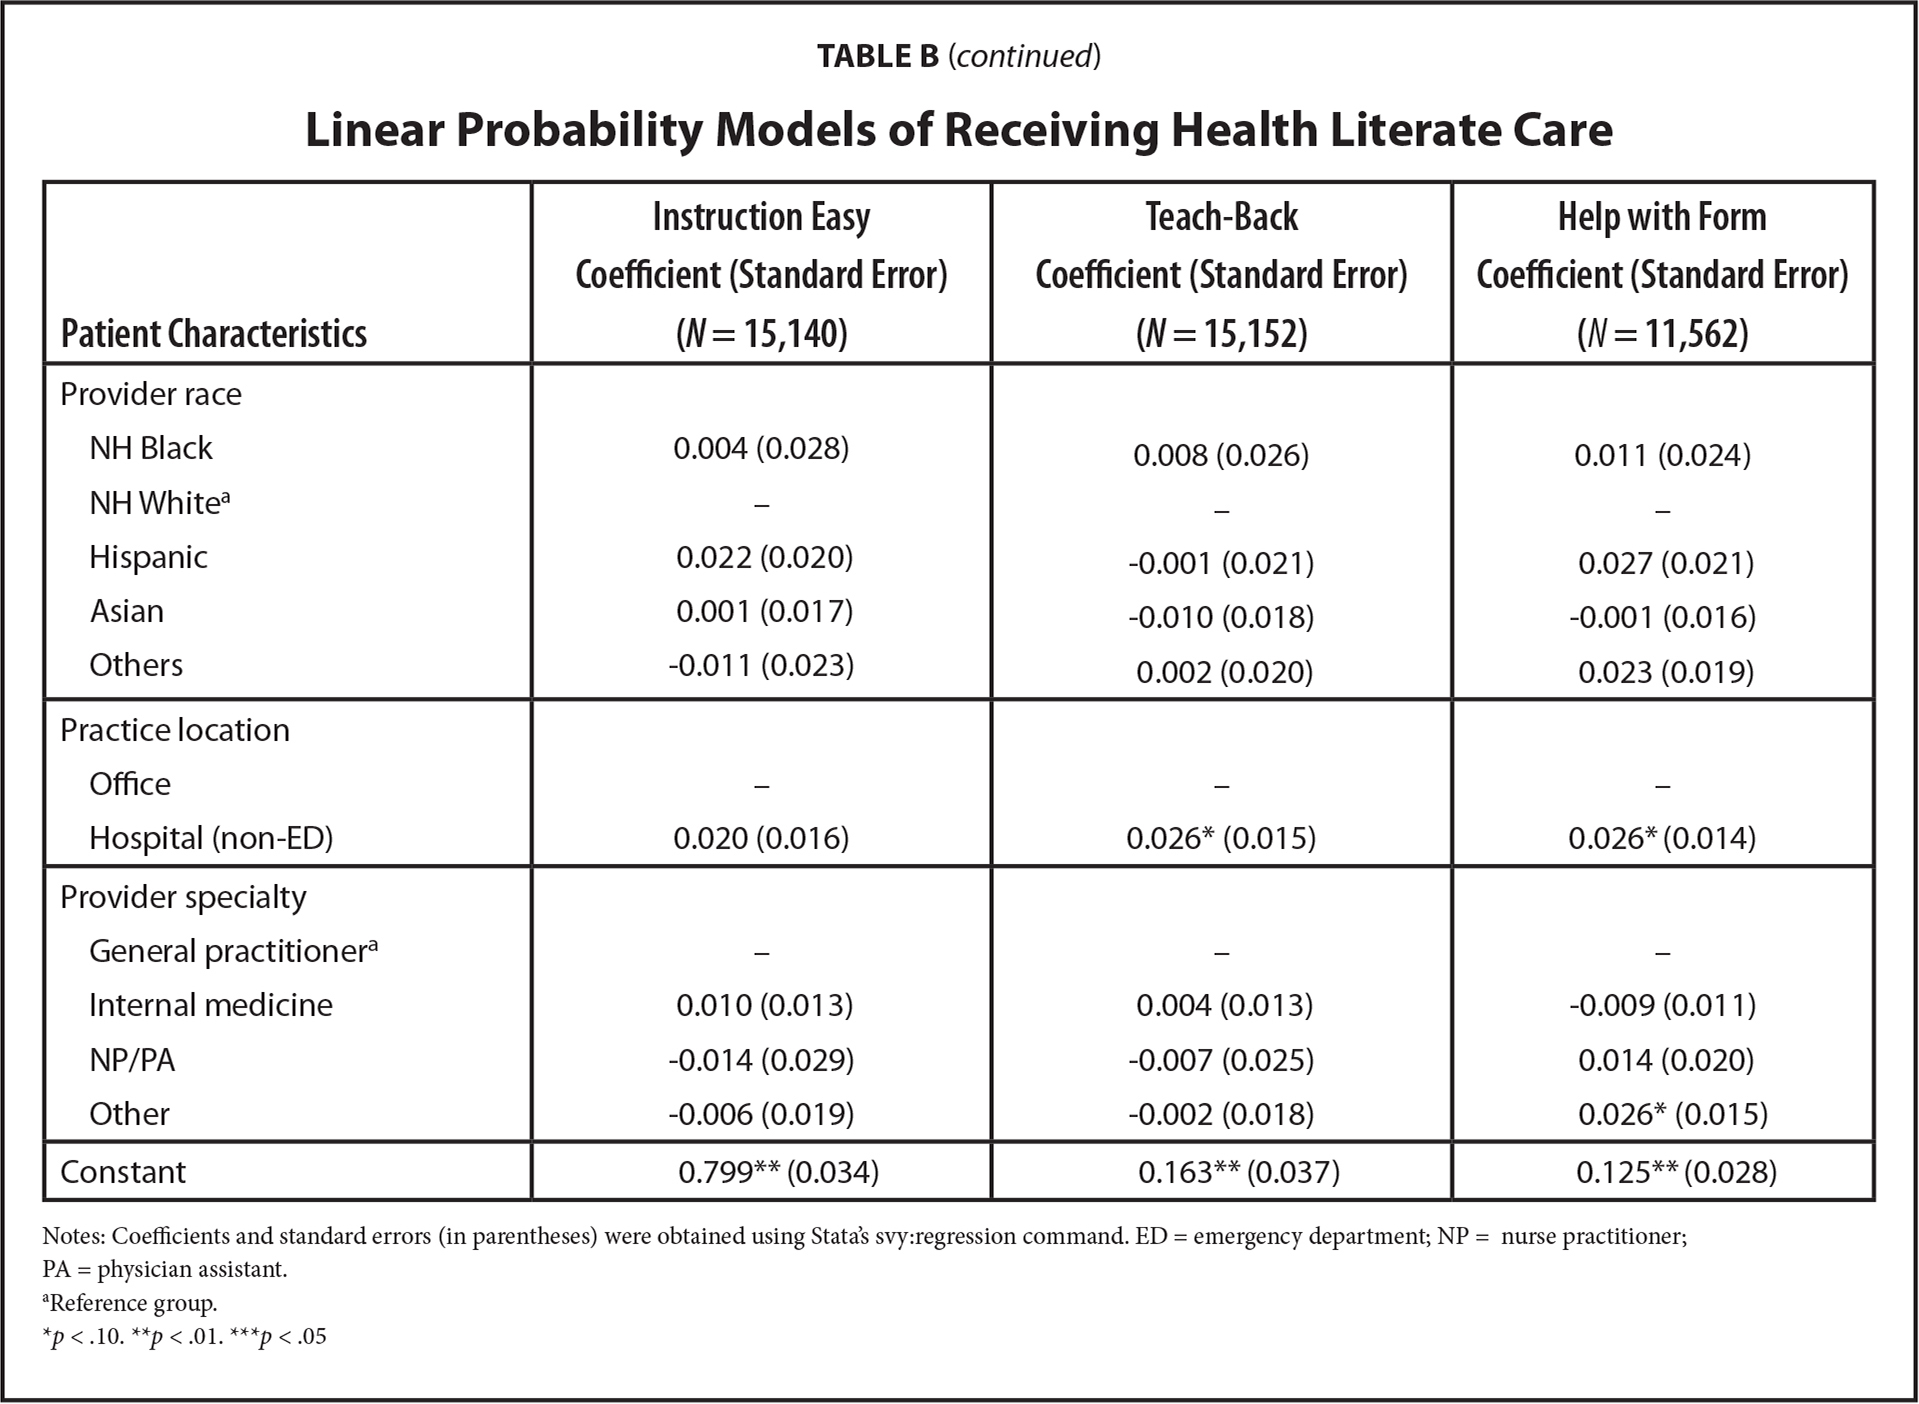 Linear Probability Models of Receiving Health Literate Care